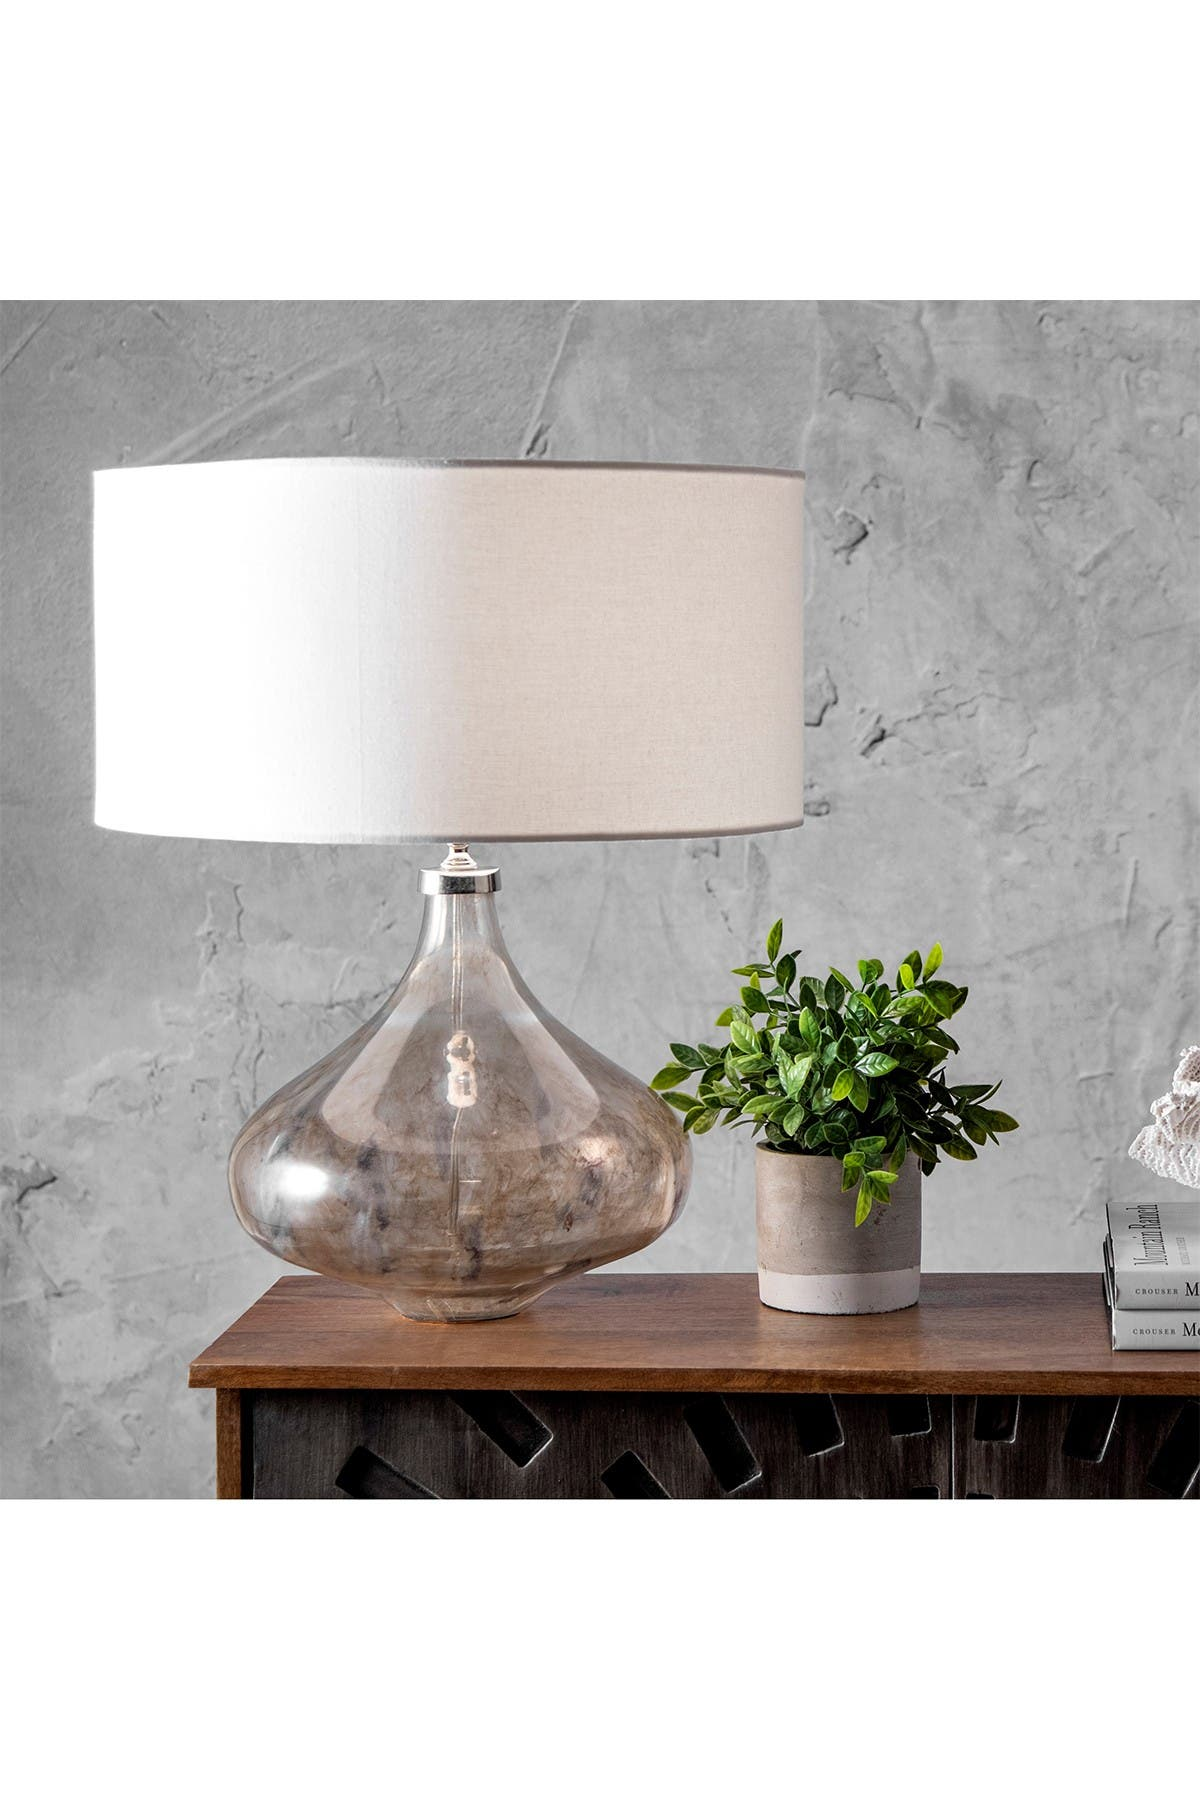 "Image of nuLOOM Gray Glass Teardrop 21"" Linen Shade Table Lamp"